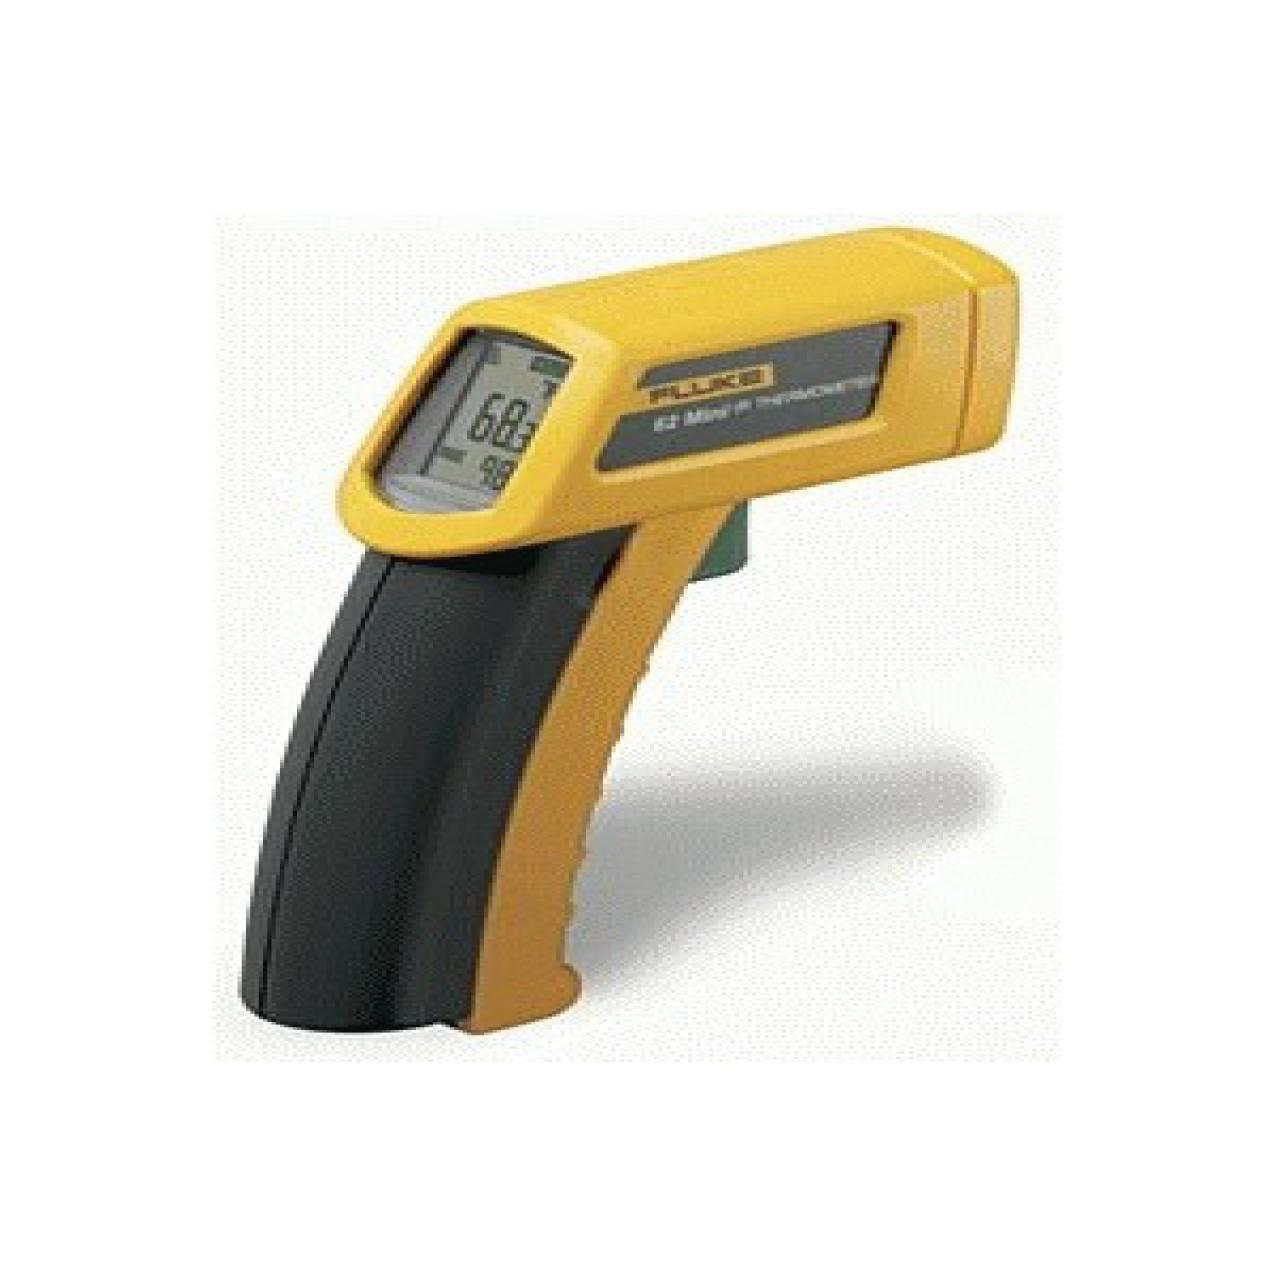 Fluke - Thermometer - Fluke 62 MAX Infrared Thermometers